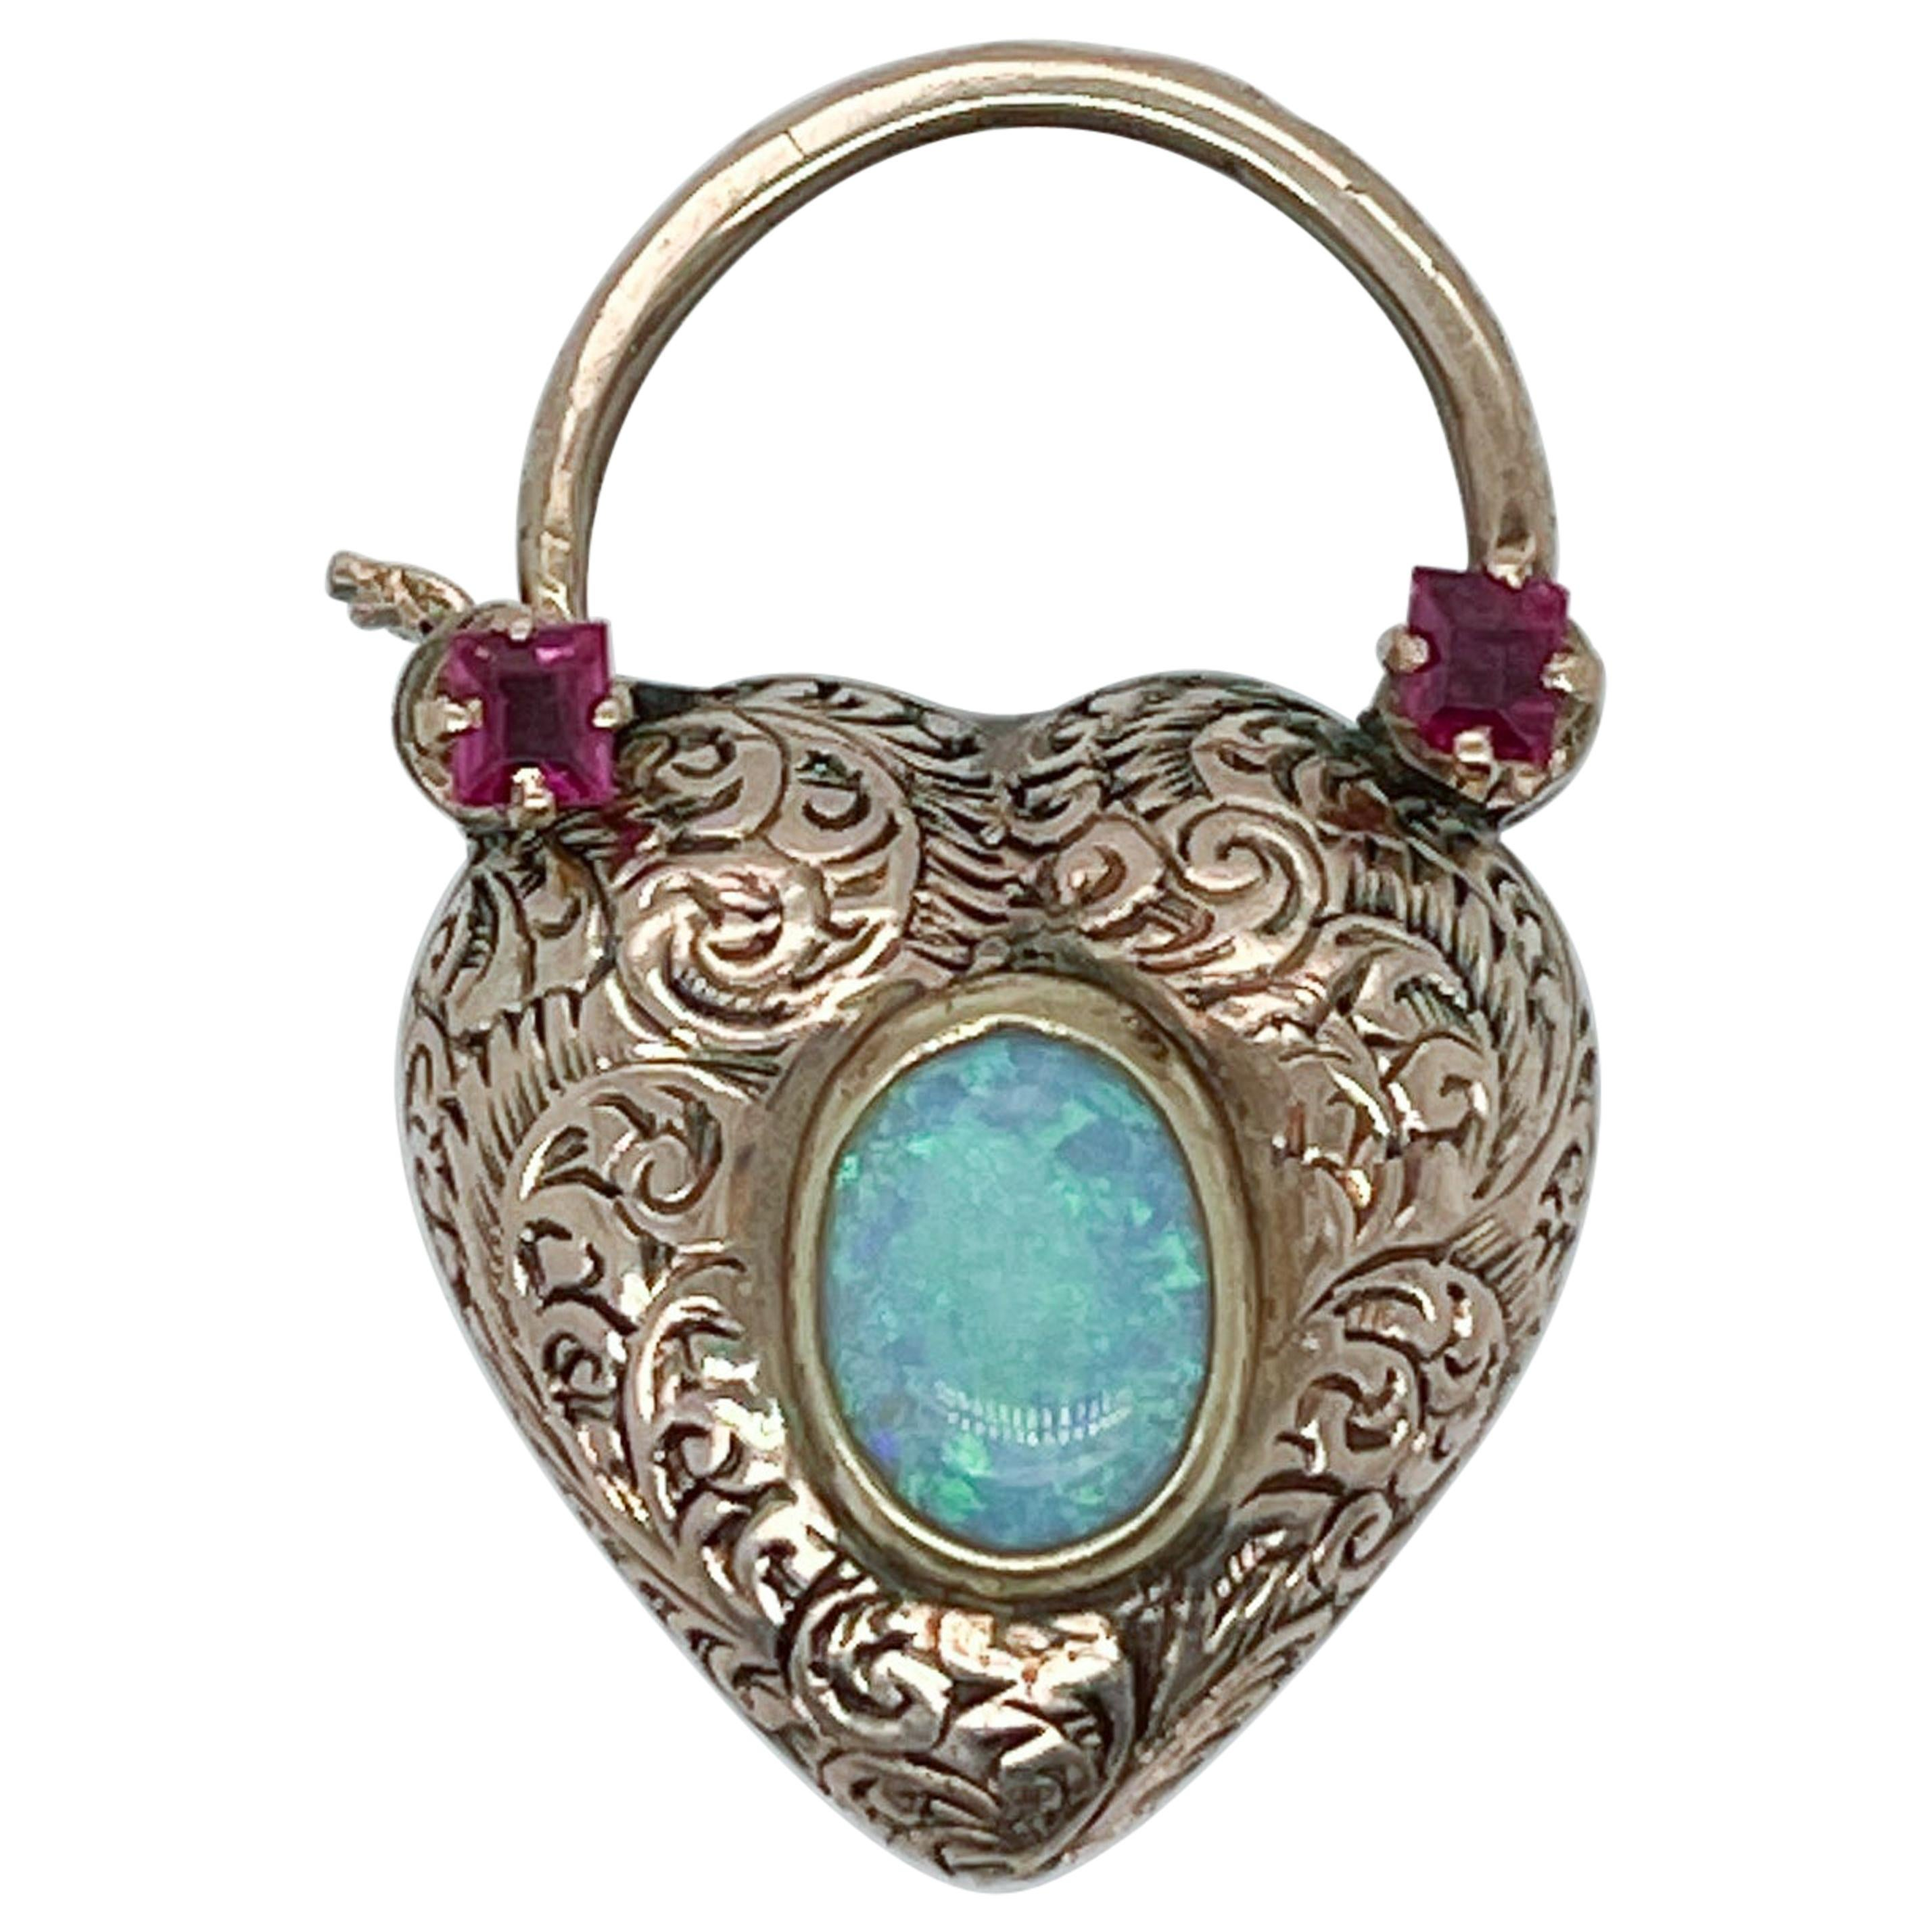 14k Gold, Turquoise, Opal & Garnet Heart Shaped Lock Charm or Pendant